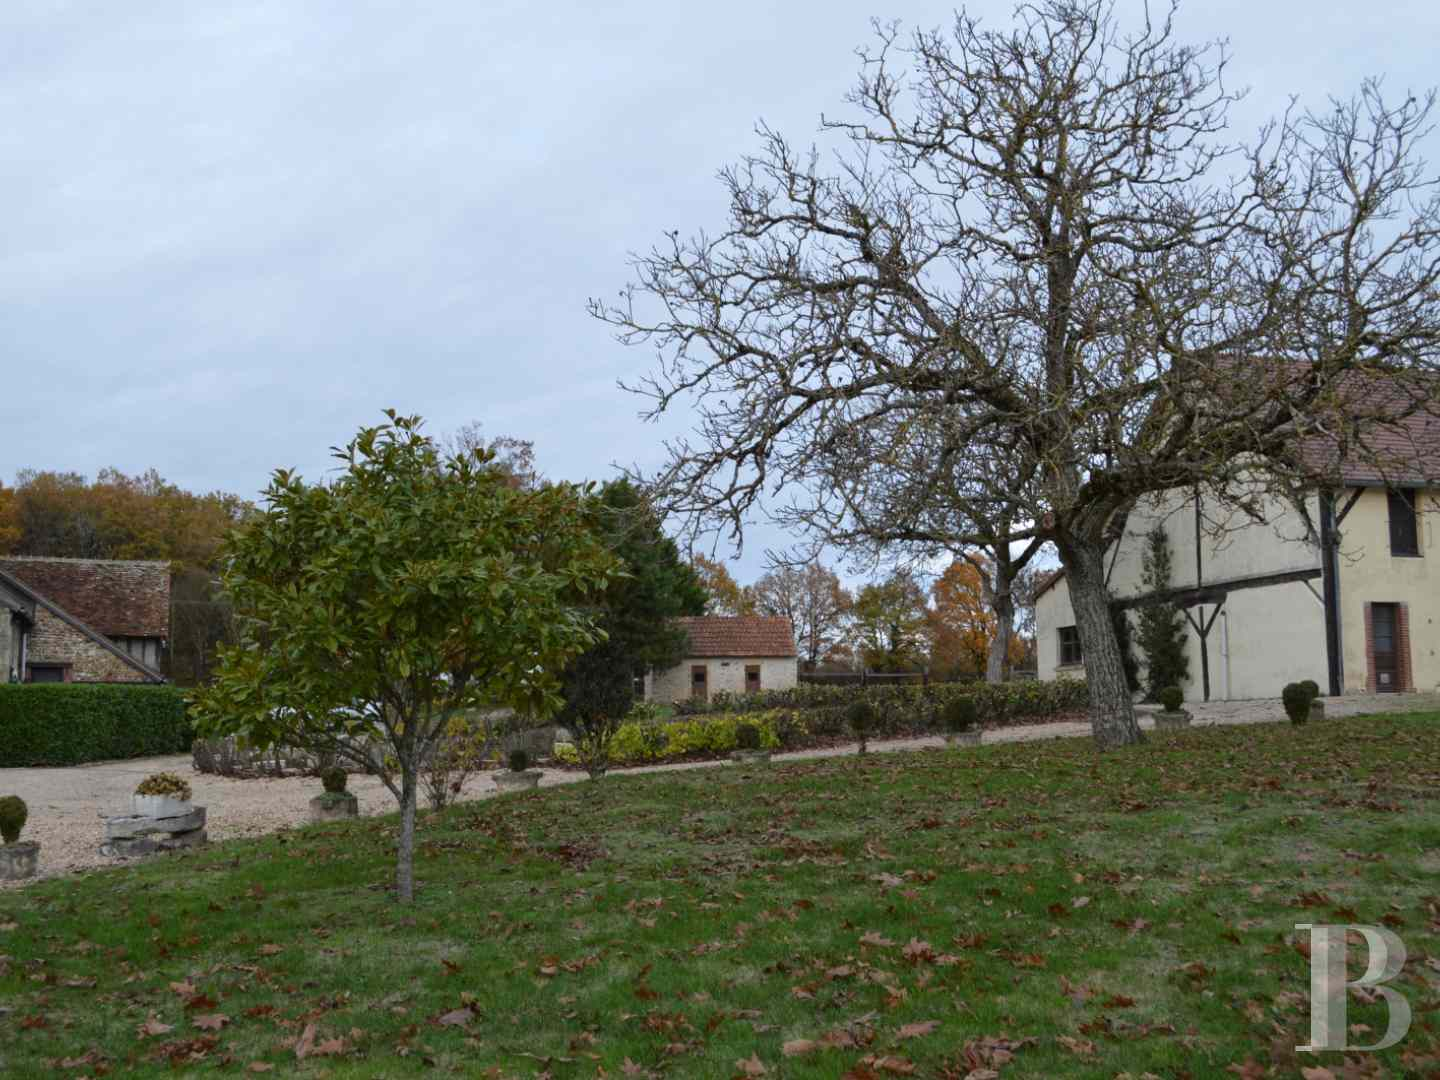 France mansions for sale center val de loire manors hunting - 11 zoom